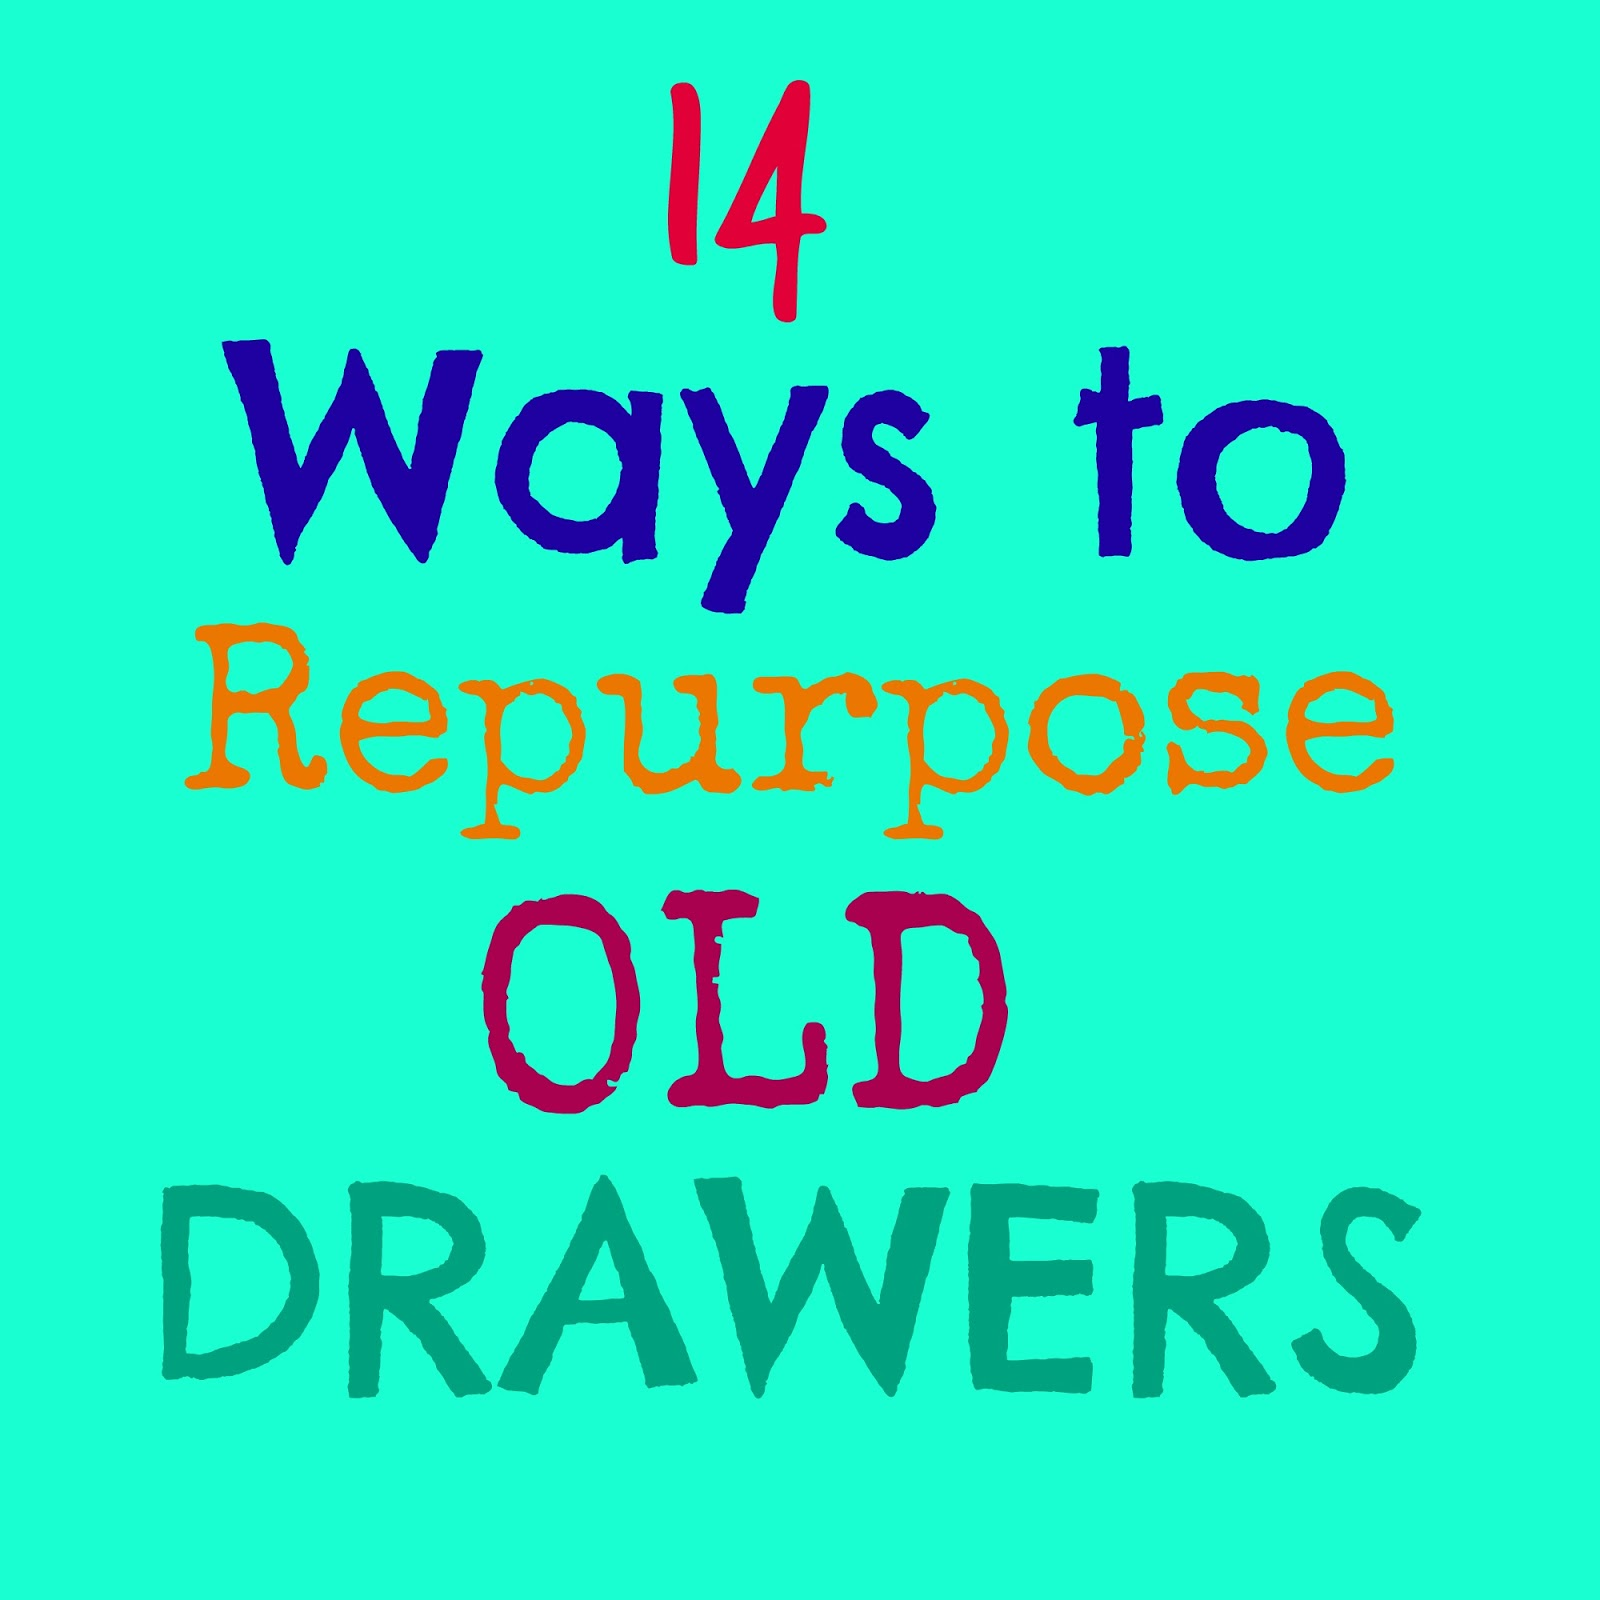 14 Fabulous Ways to Repurpose Old Drawers - Crafts a la mode